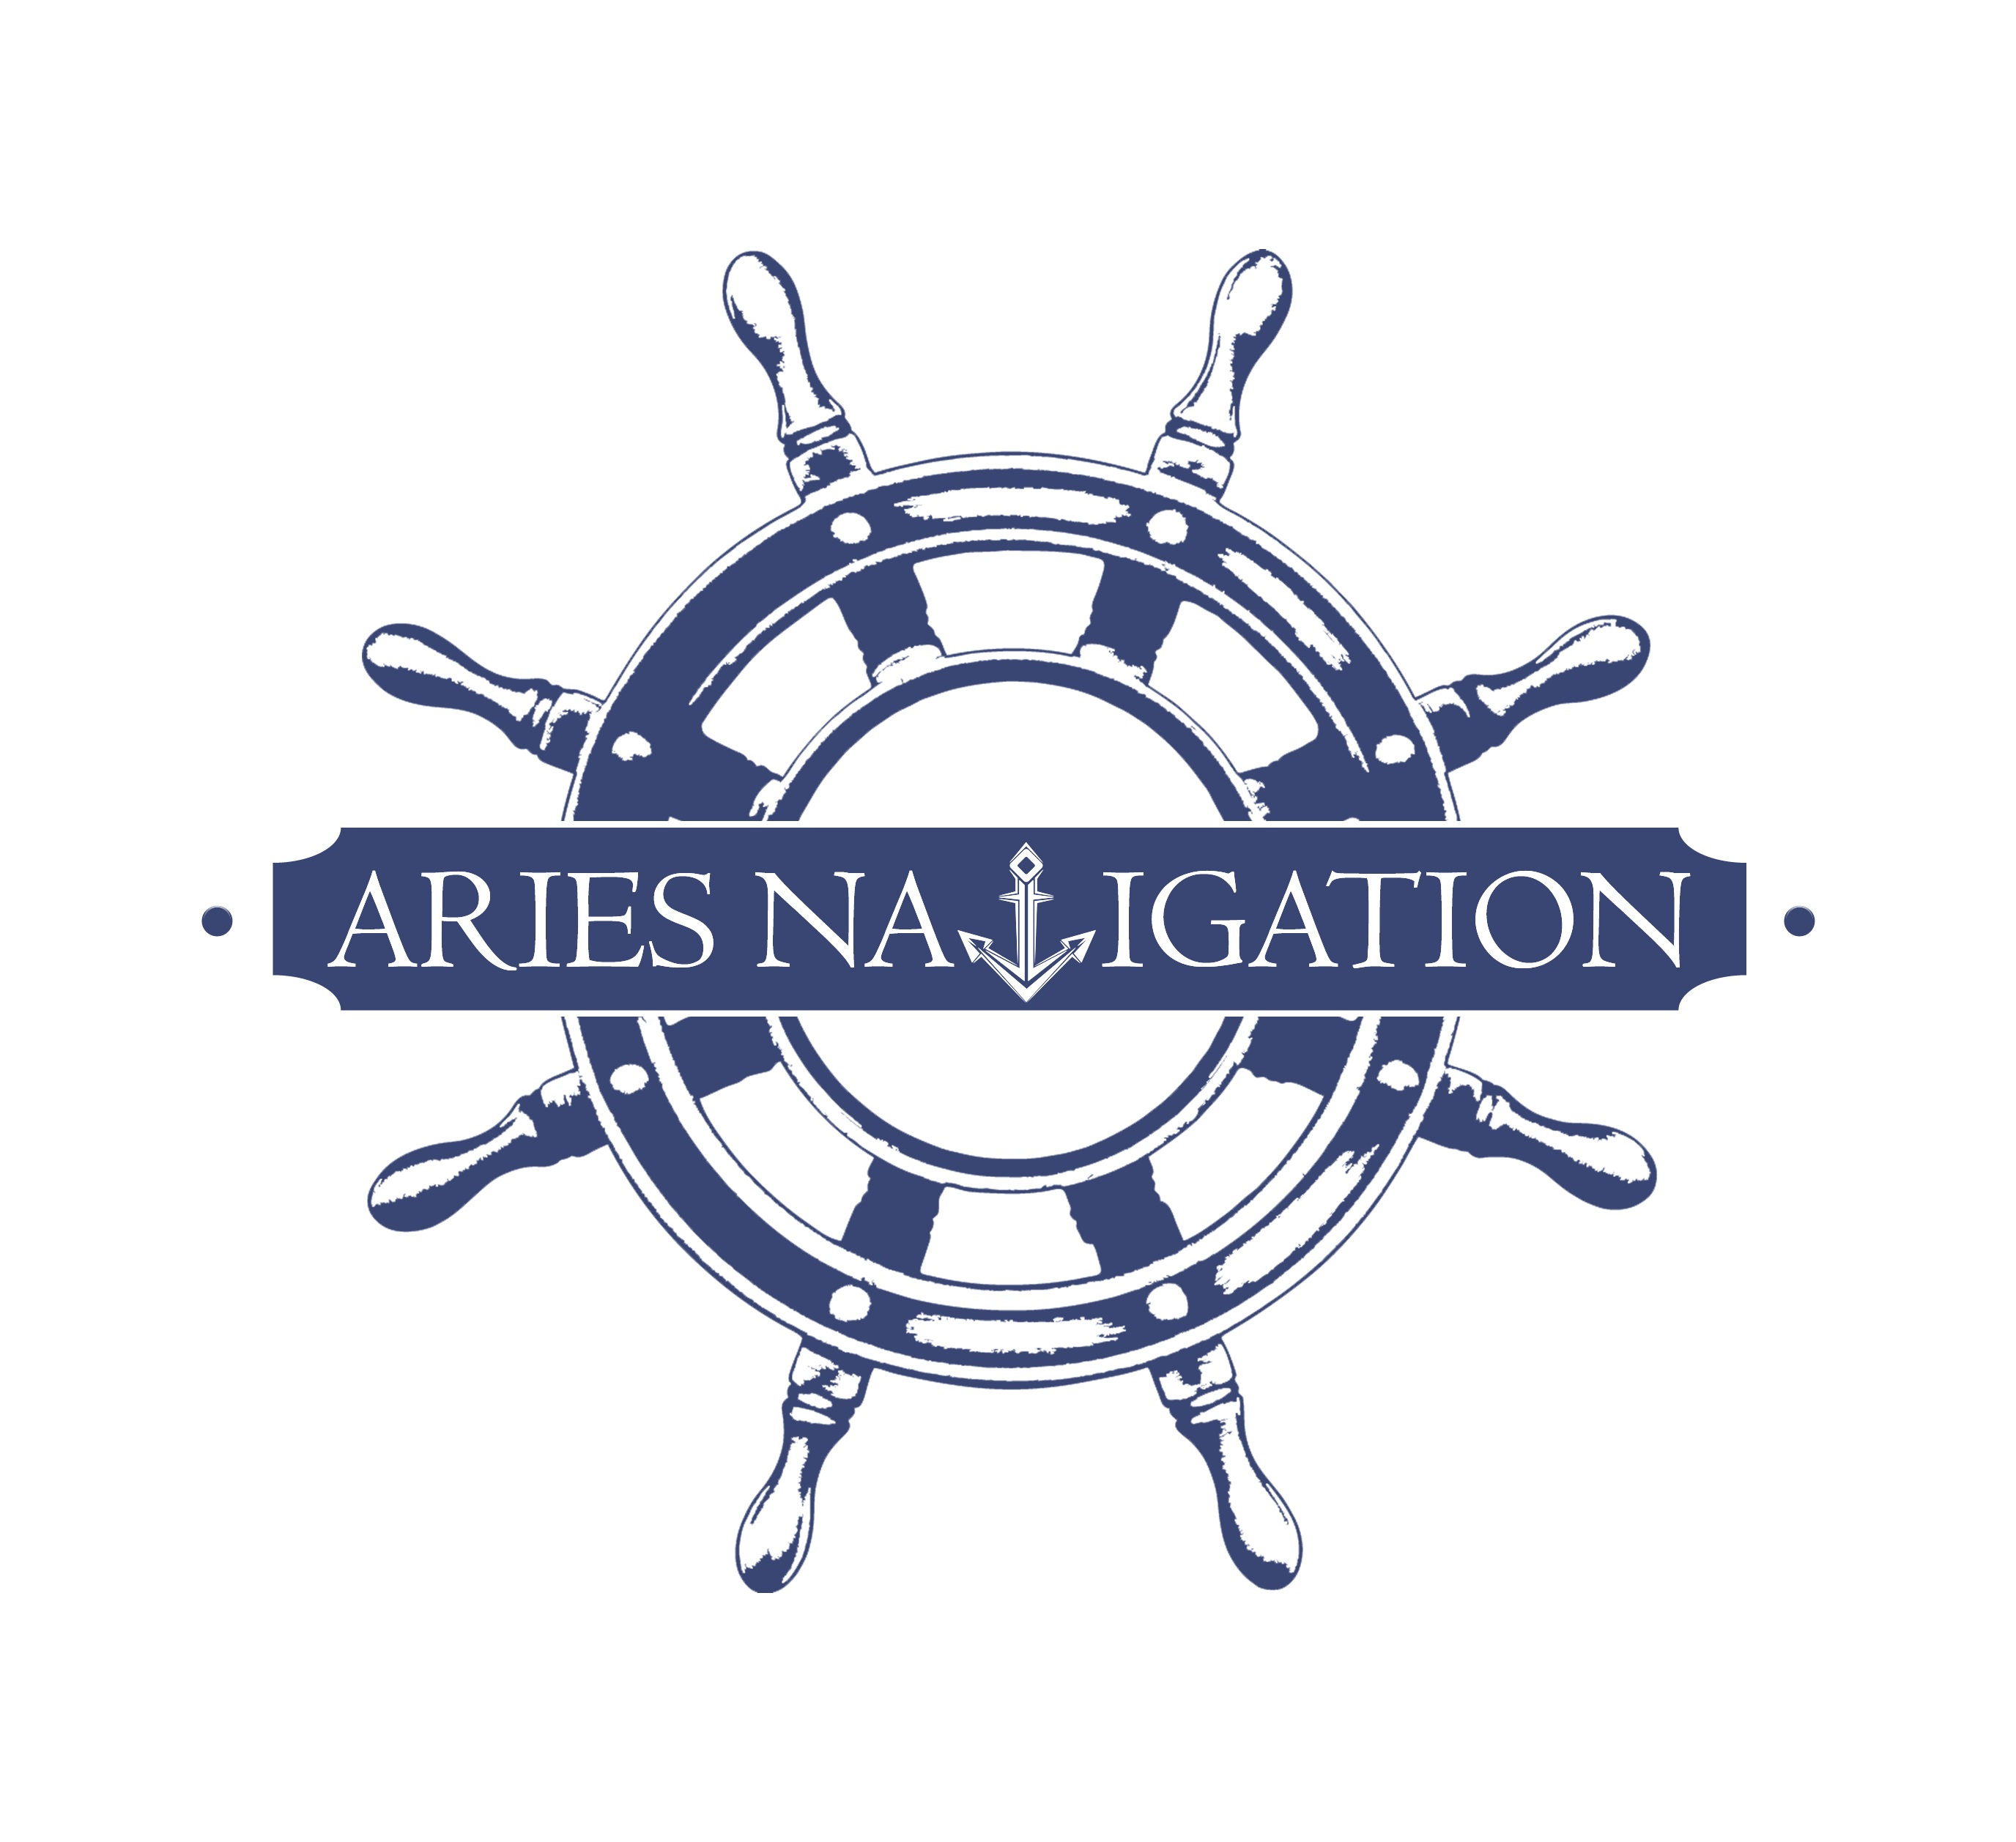 Aries Navigation LTD Maritime Company